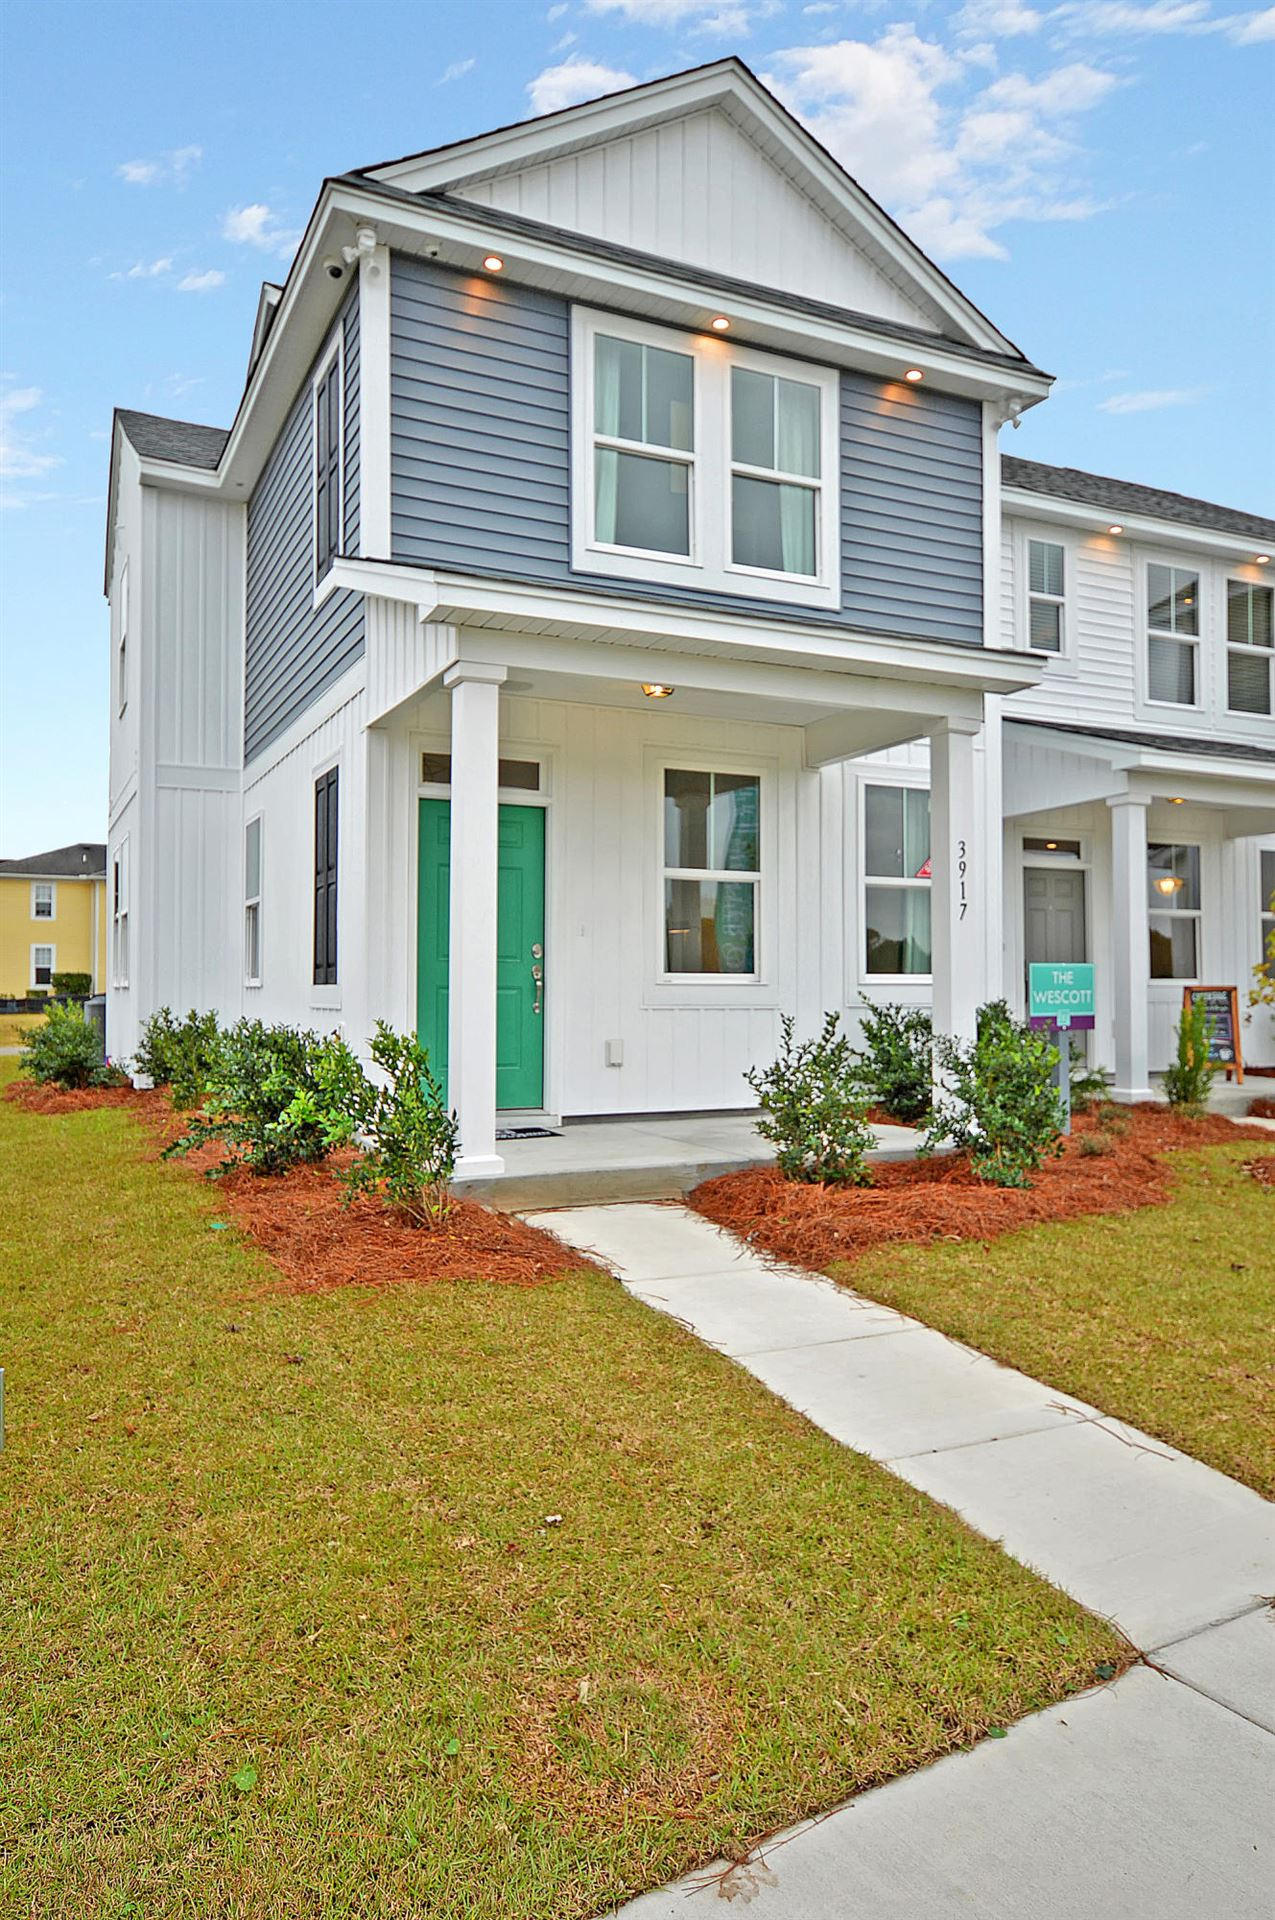 Photo of 3917 Four Poles Park Drive, North Charleston, SC 29405 (MLS # 20032167)